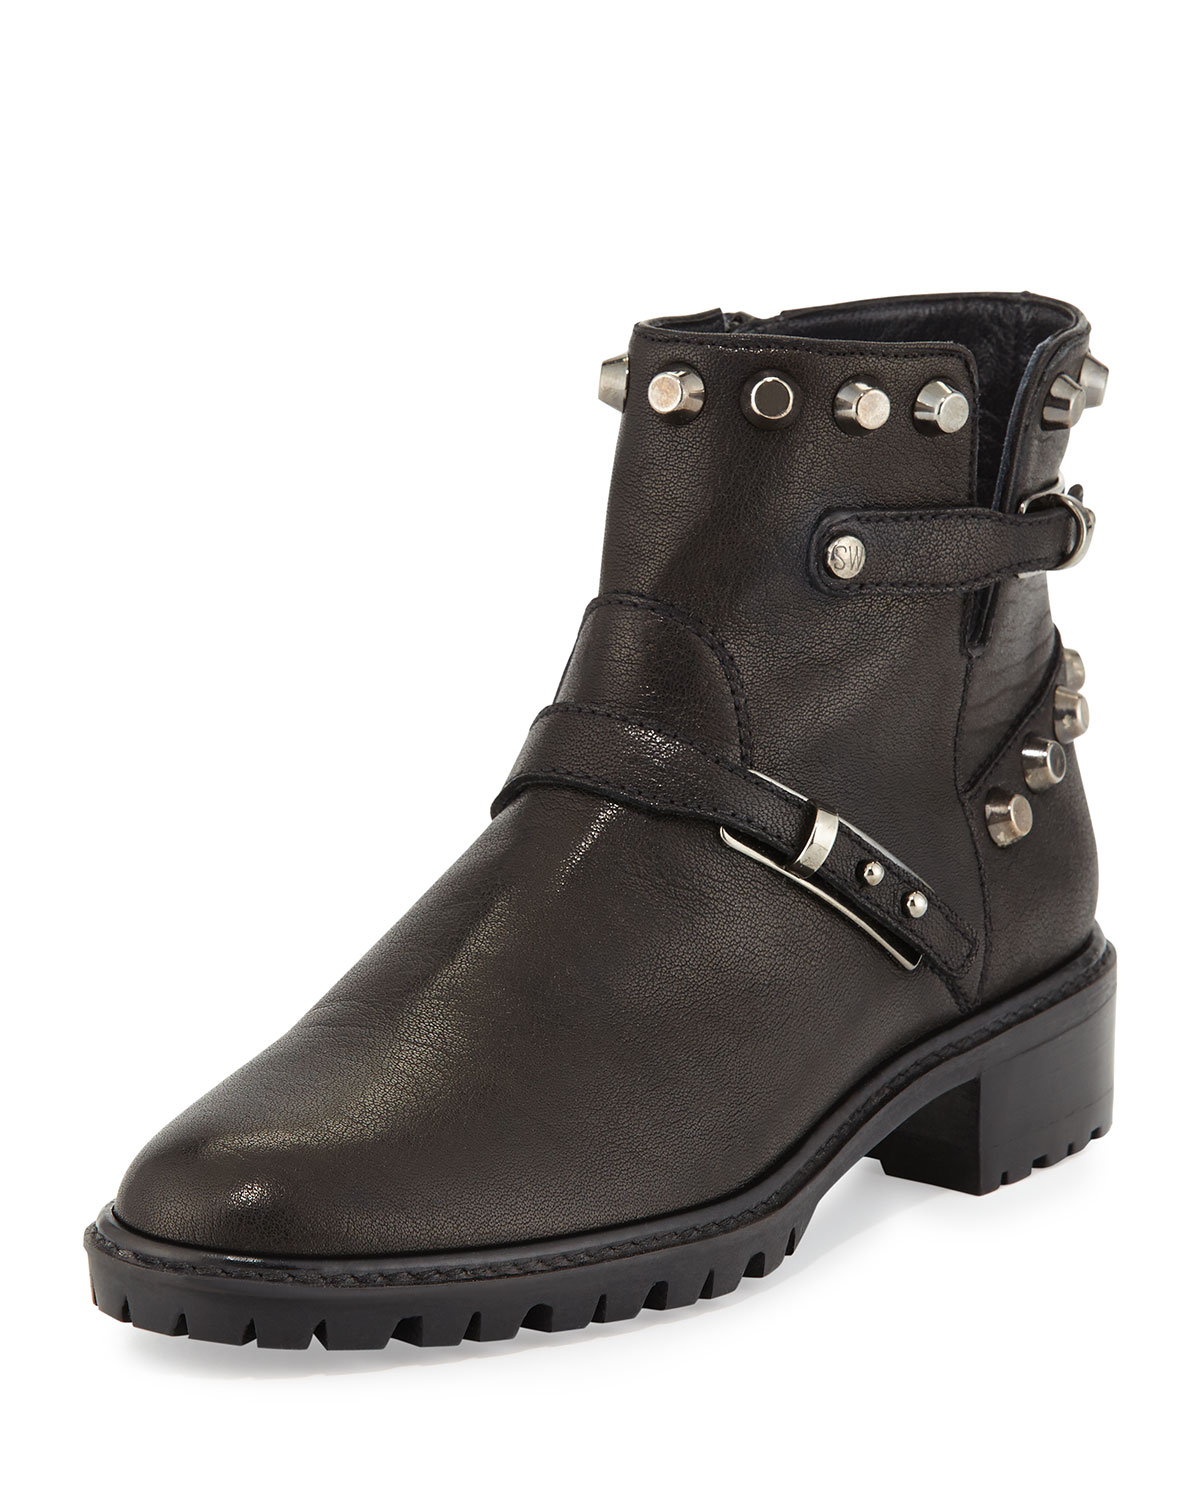 Go West Studded Leather Ankle Boot, Black by Stuart Weitzman